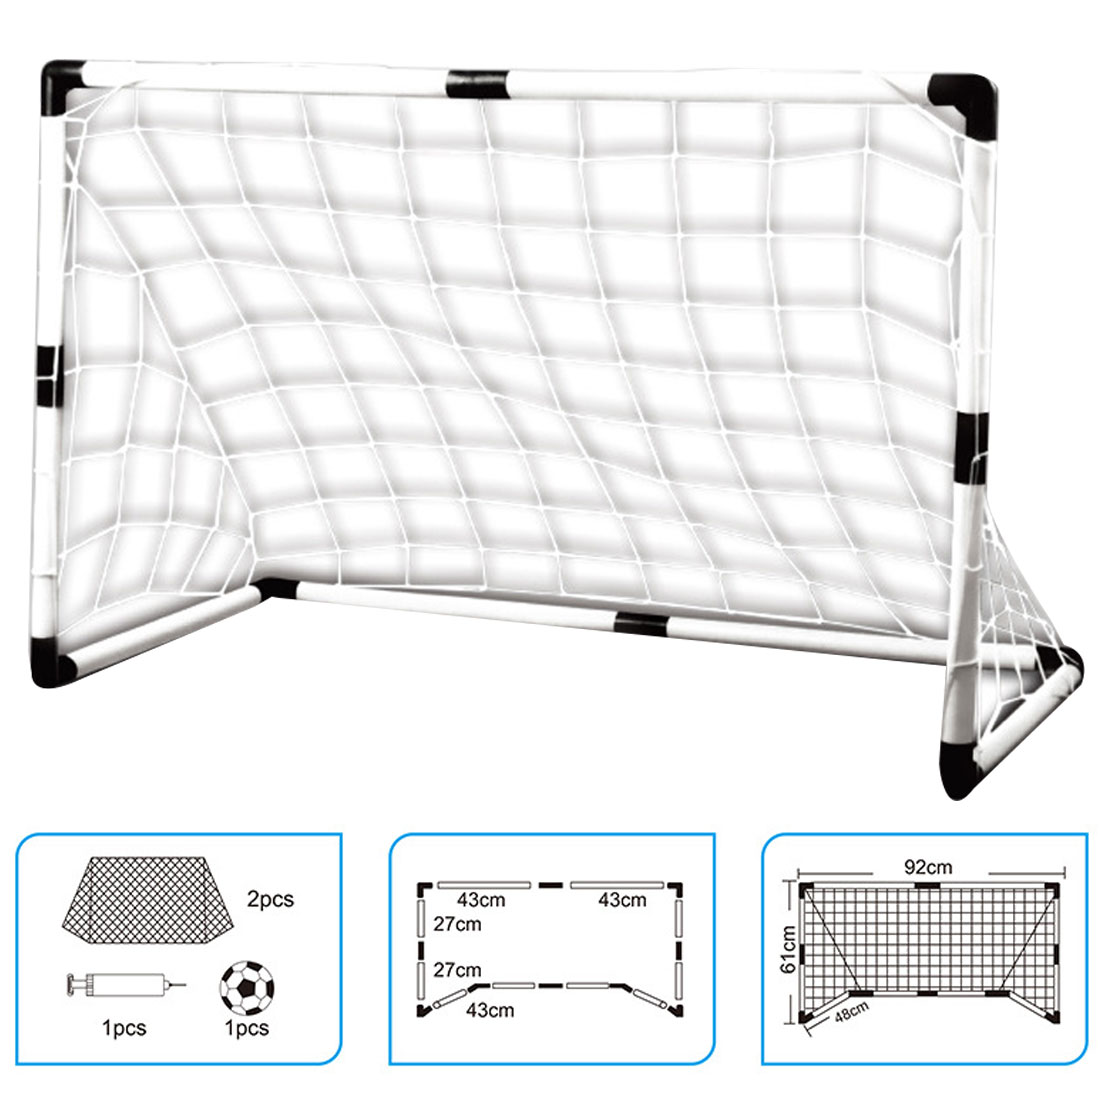 Hot 2 Sets Detachable DIY Children Sports Soccer Goals Practice Scrimmage Game Football Gate DIY White With Soccer Ball and Pump image